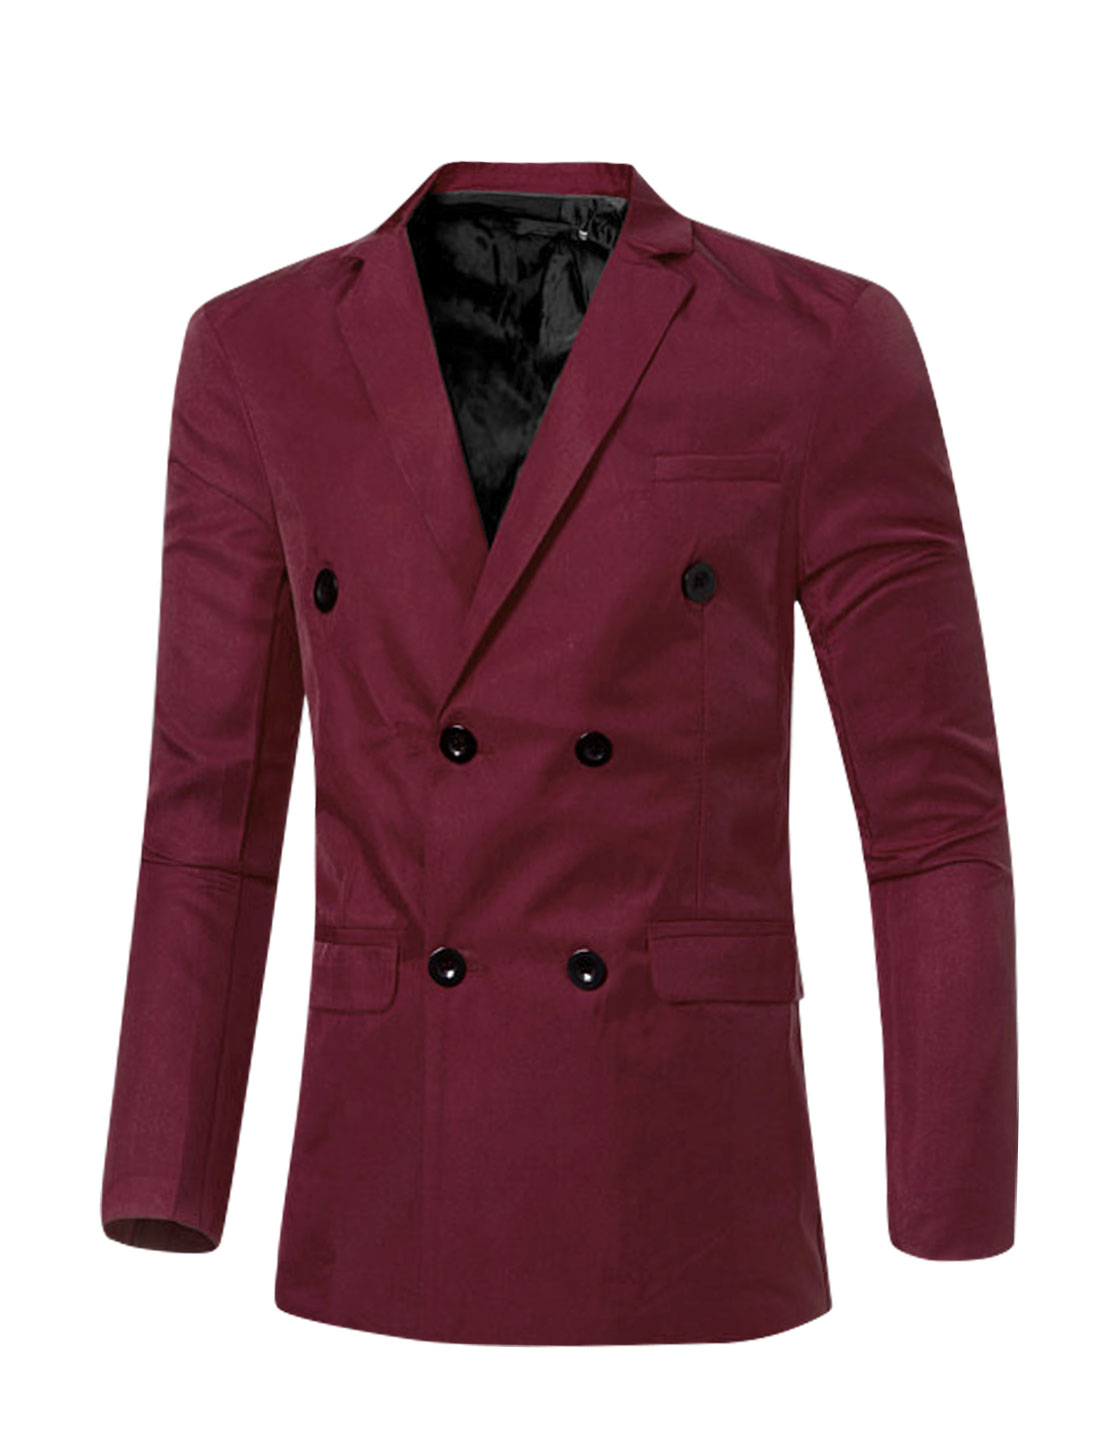 Men Notched Lapel Flap Pockets Double Breasted Blazer Burgundy S